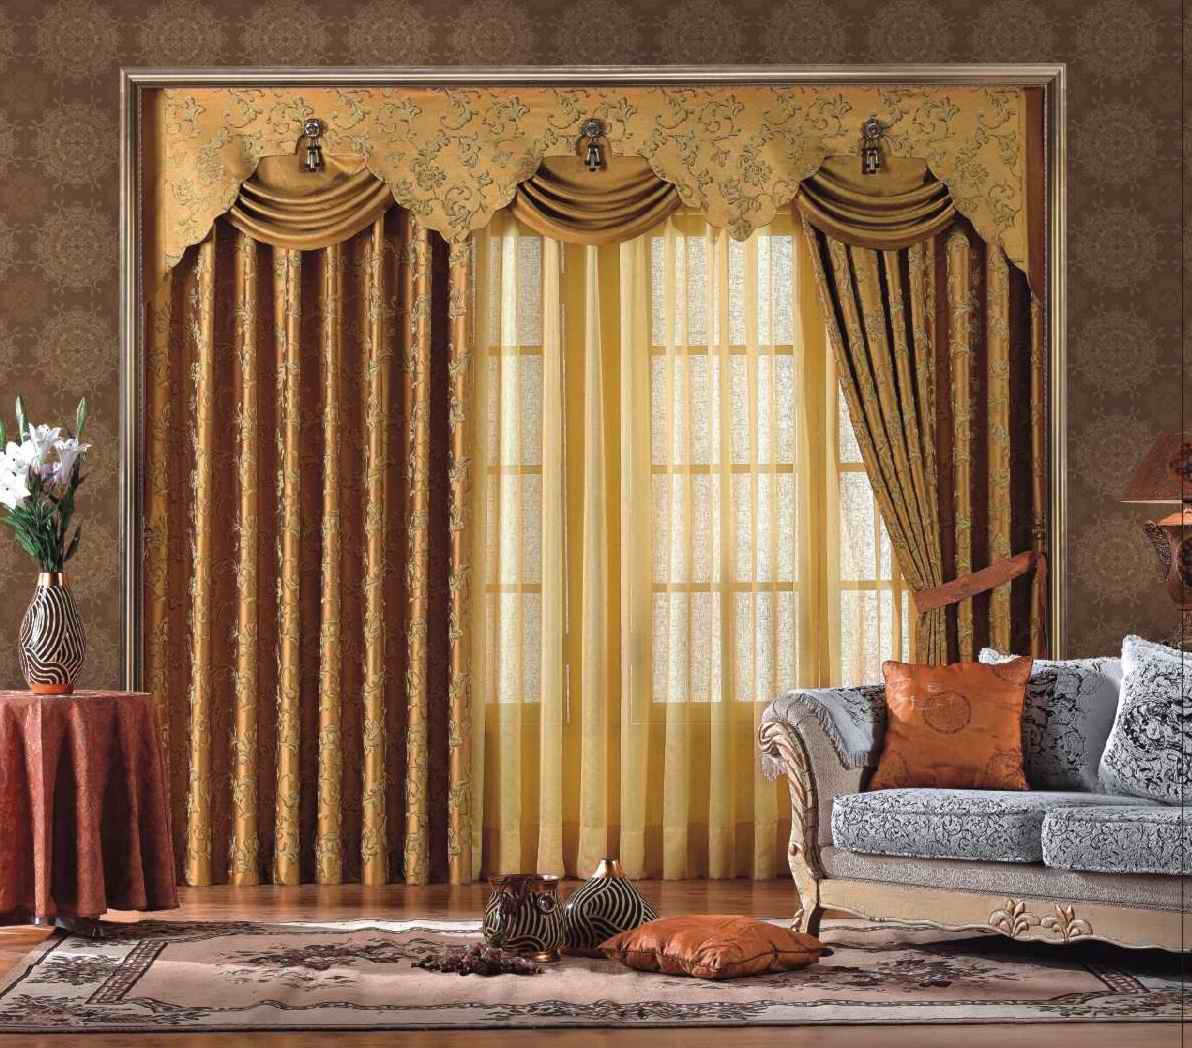 Curtain Fabric Wholesale Curtain Fabrics Different Types Of Curtain Fabrics Shutter Door